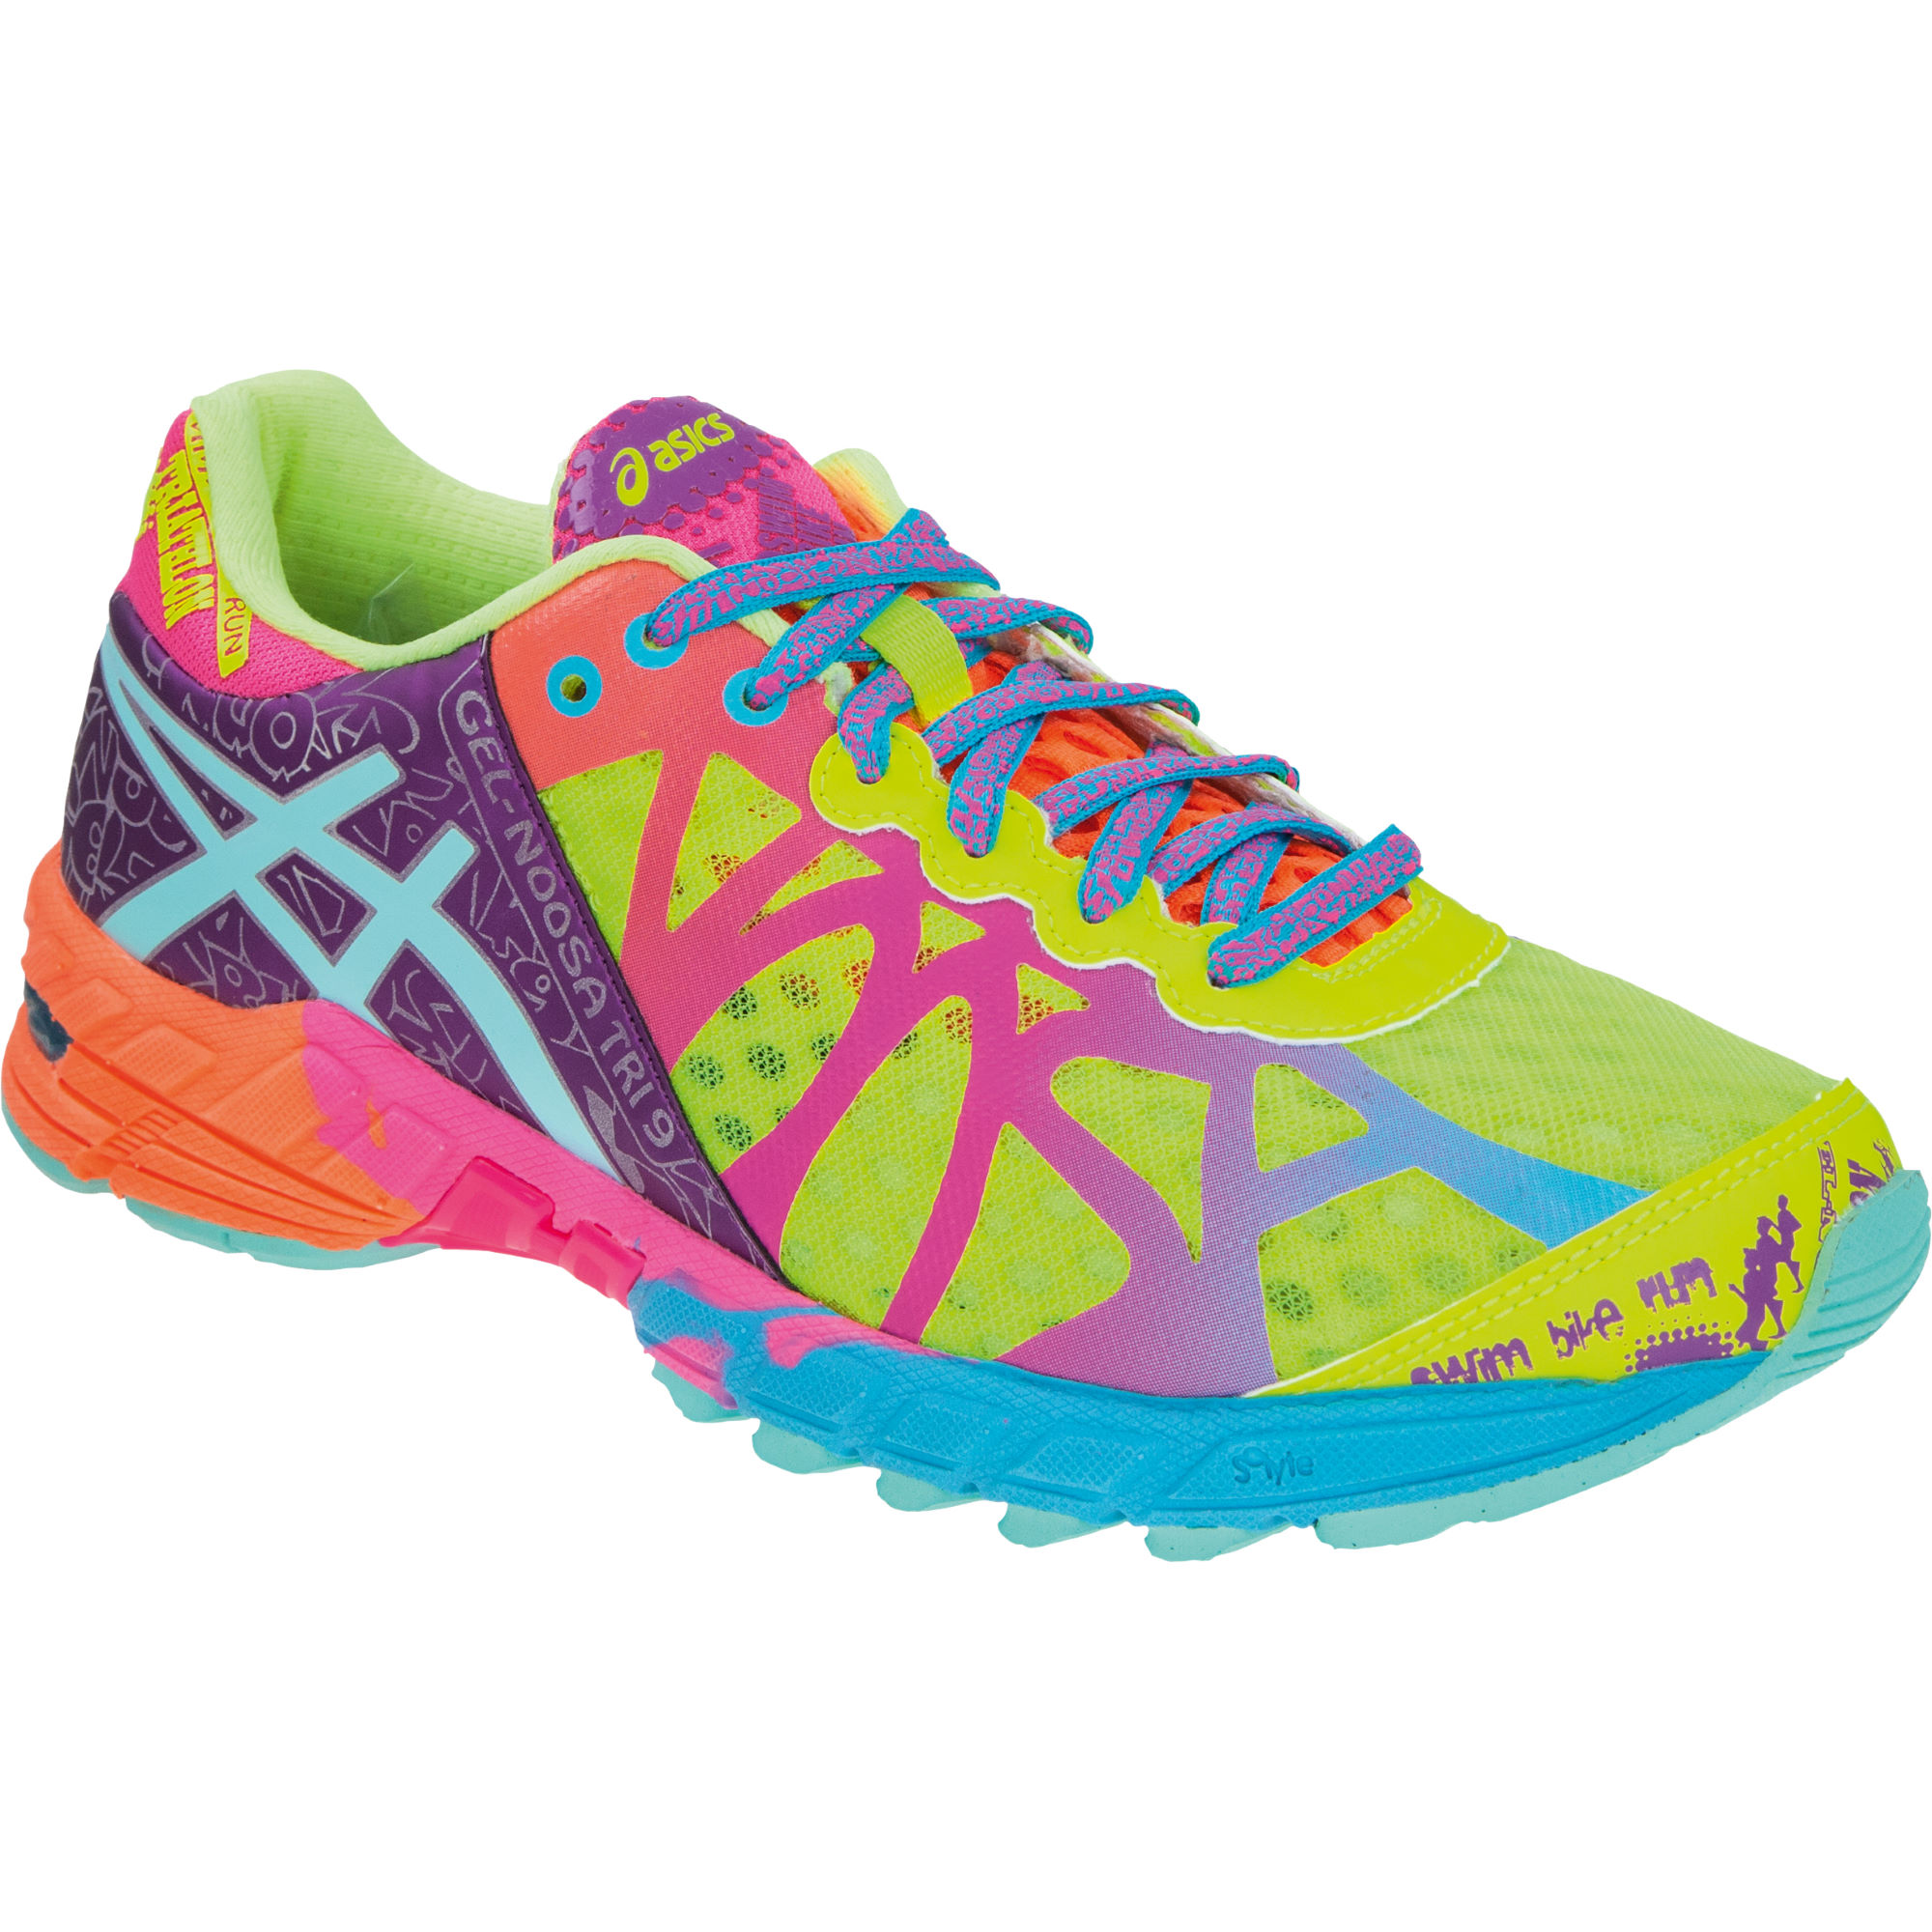 Zapatillas asics running 2014 zapatillas running asics gel - Asics Women S Gel Noosa Tri 9 Shoes Ss14